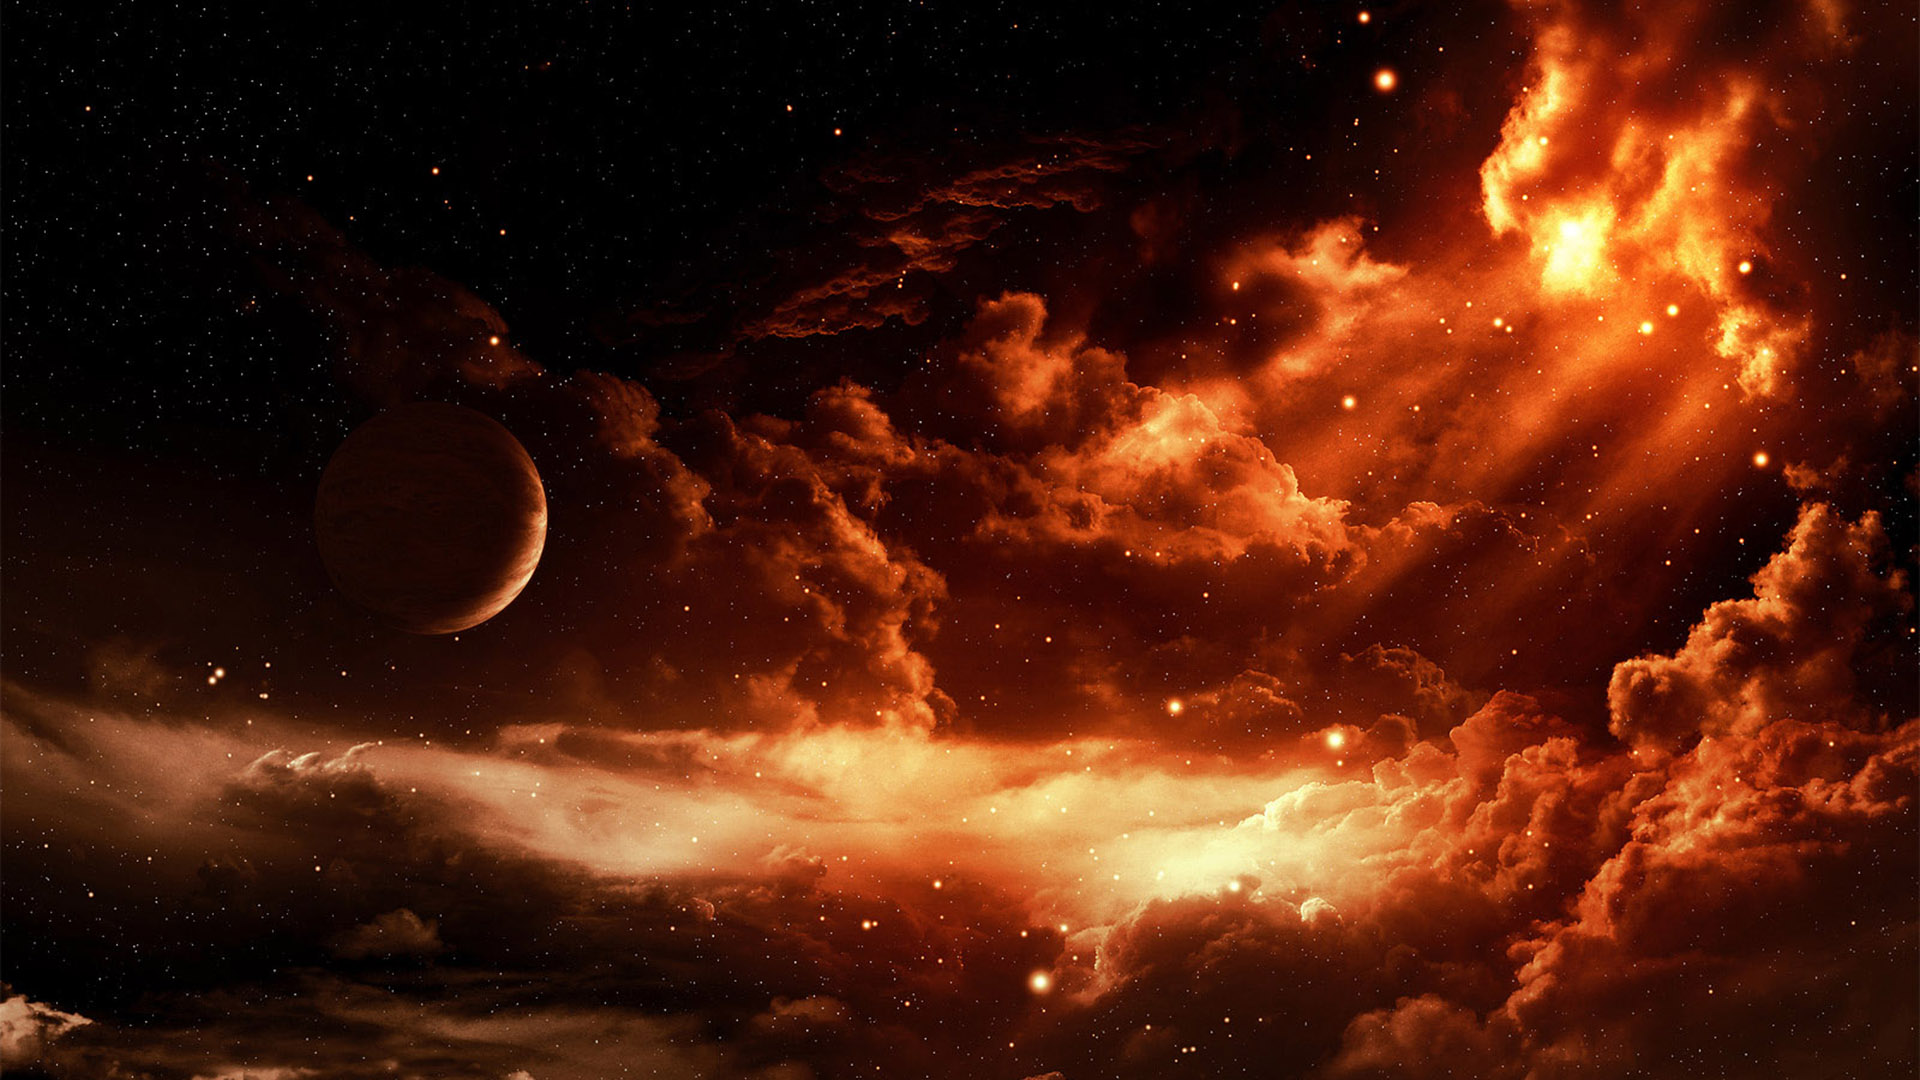 45 Stellar Space Art Wallpapers for Download 1920x1080